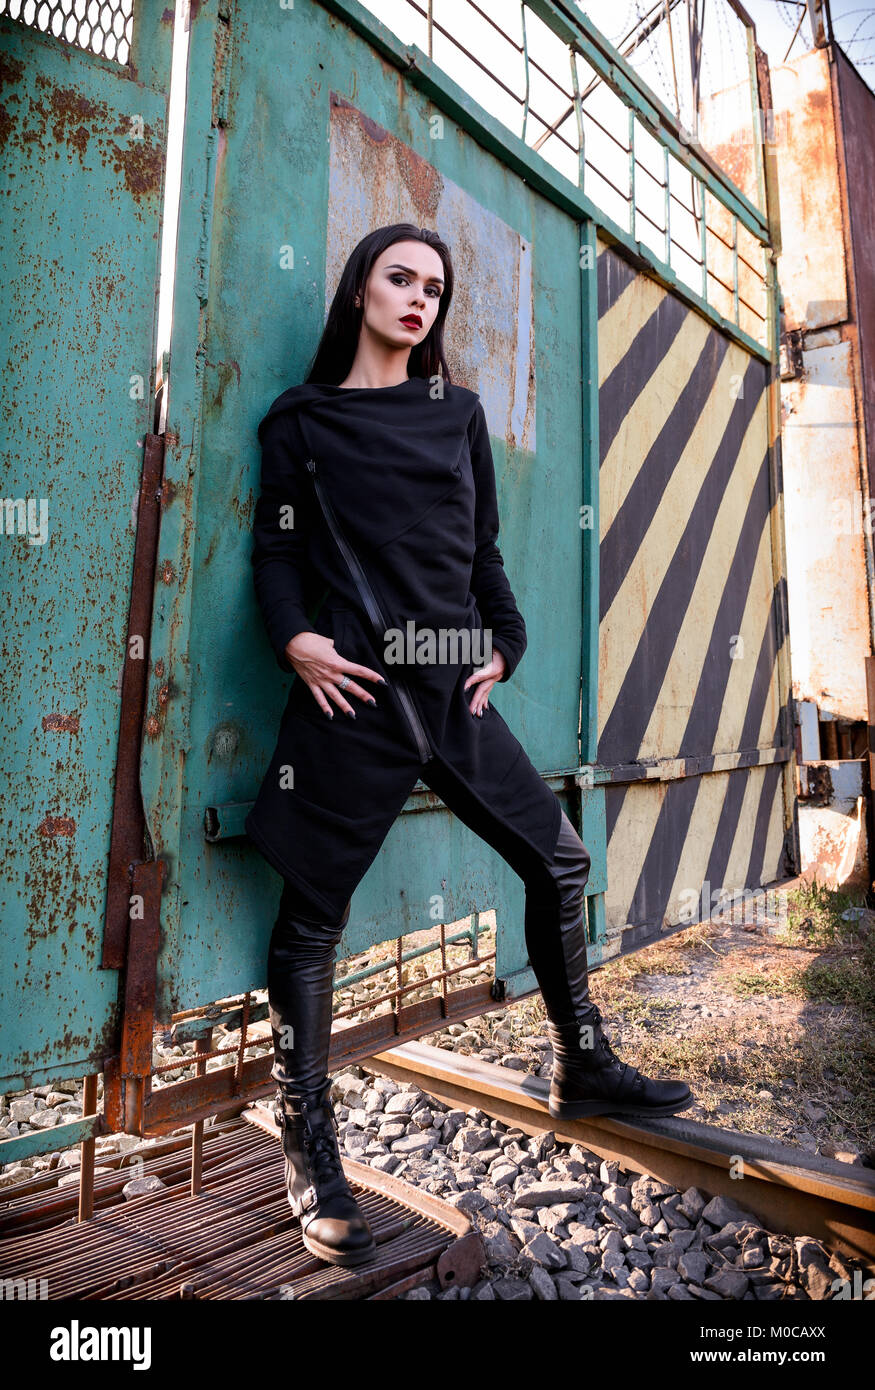 Fashion shot: portrait of the beautiful rock girl (informal model) in tunic and leather pants standing at metallic - Stock Image